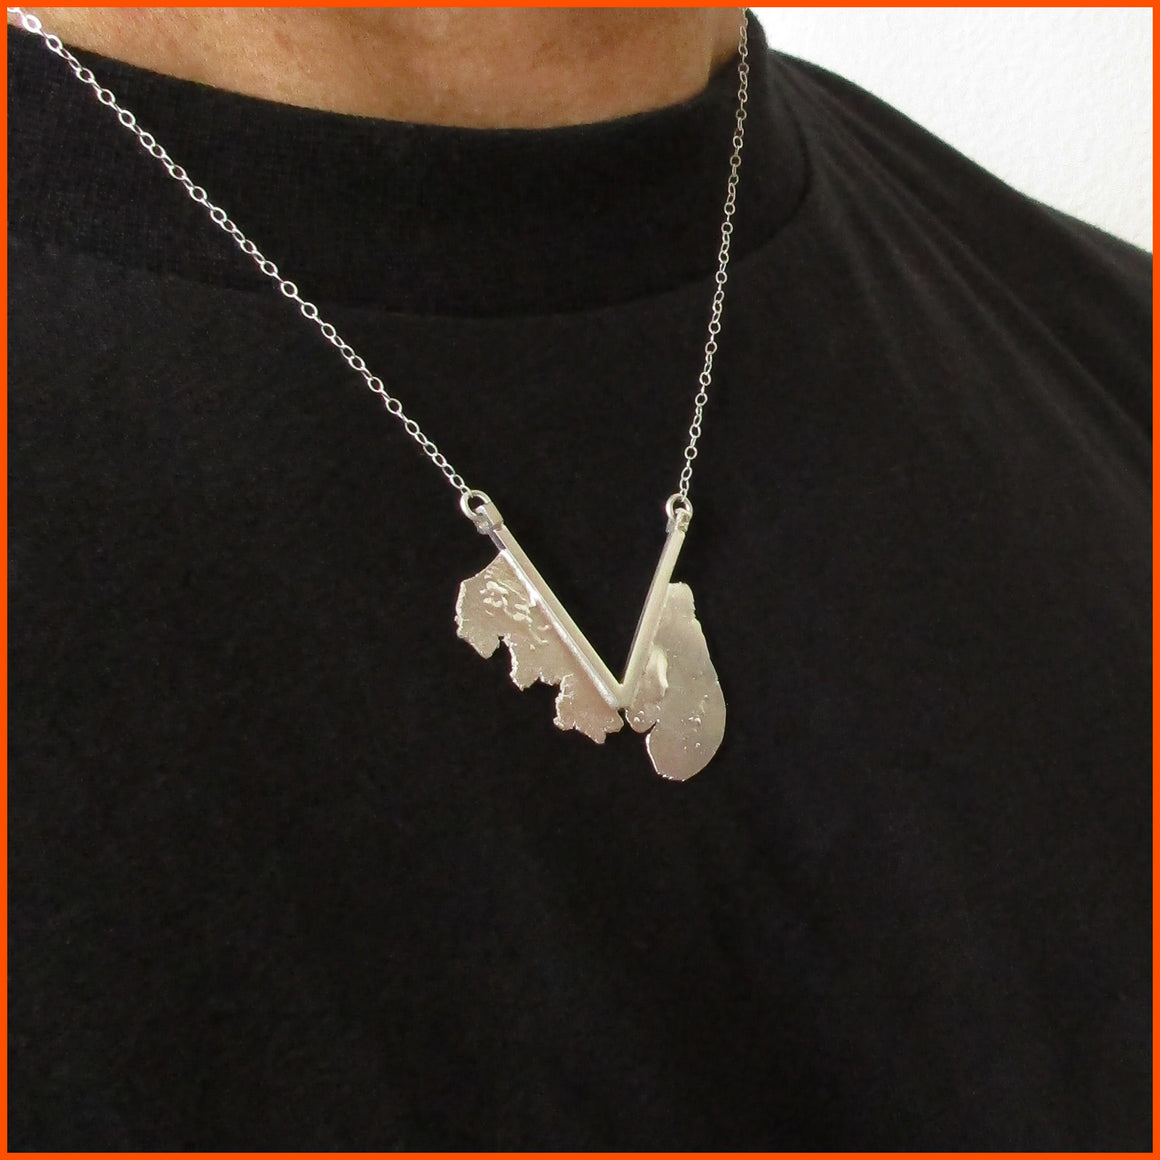 handmade sterling silver unixex necklace by seth papac jewelry